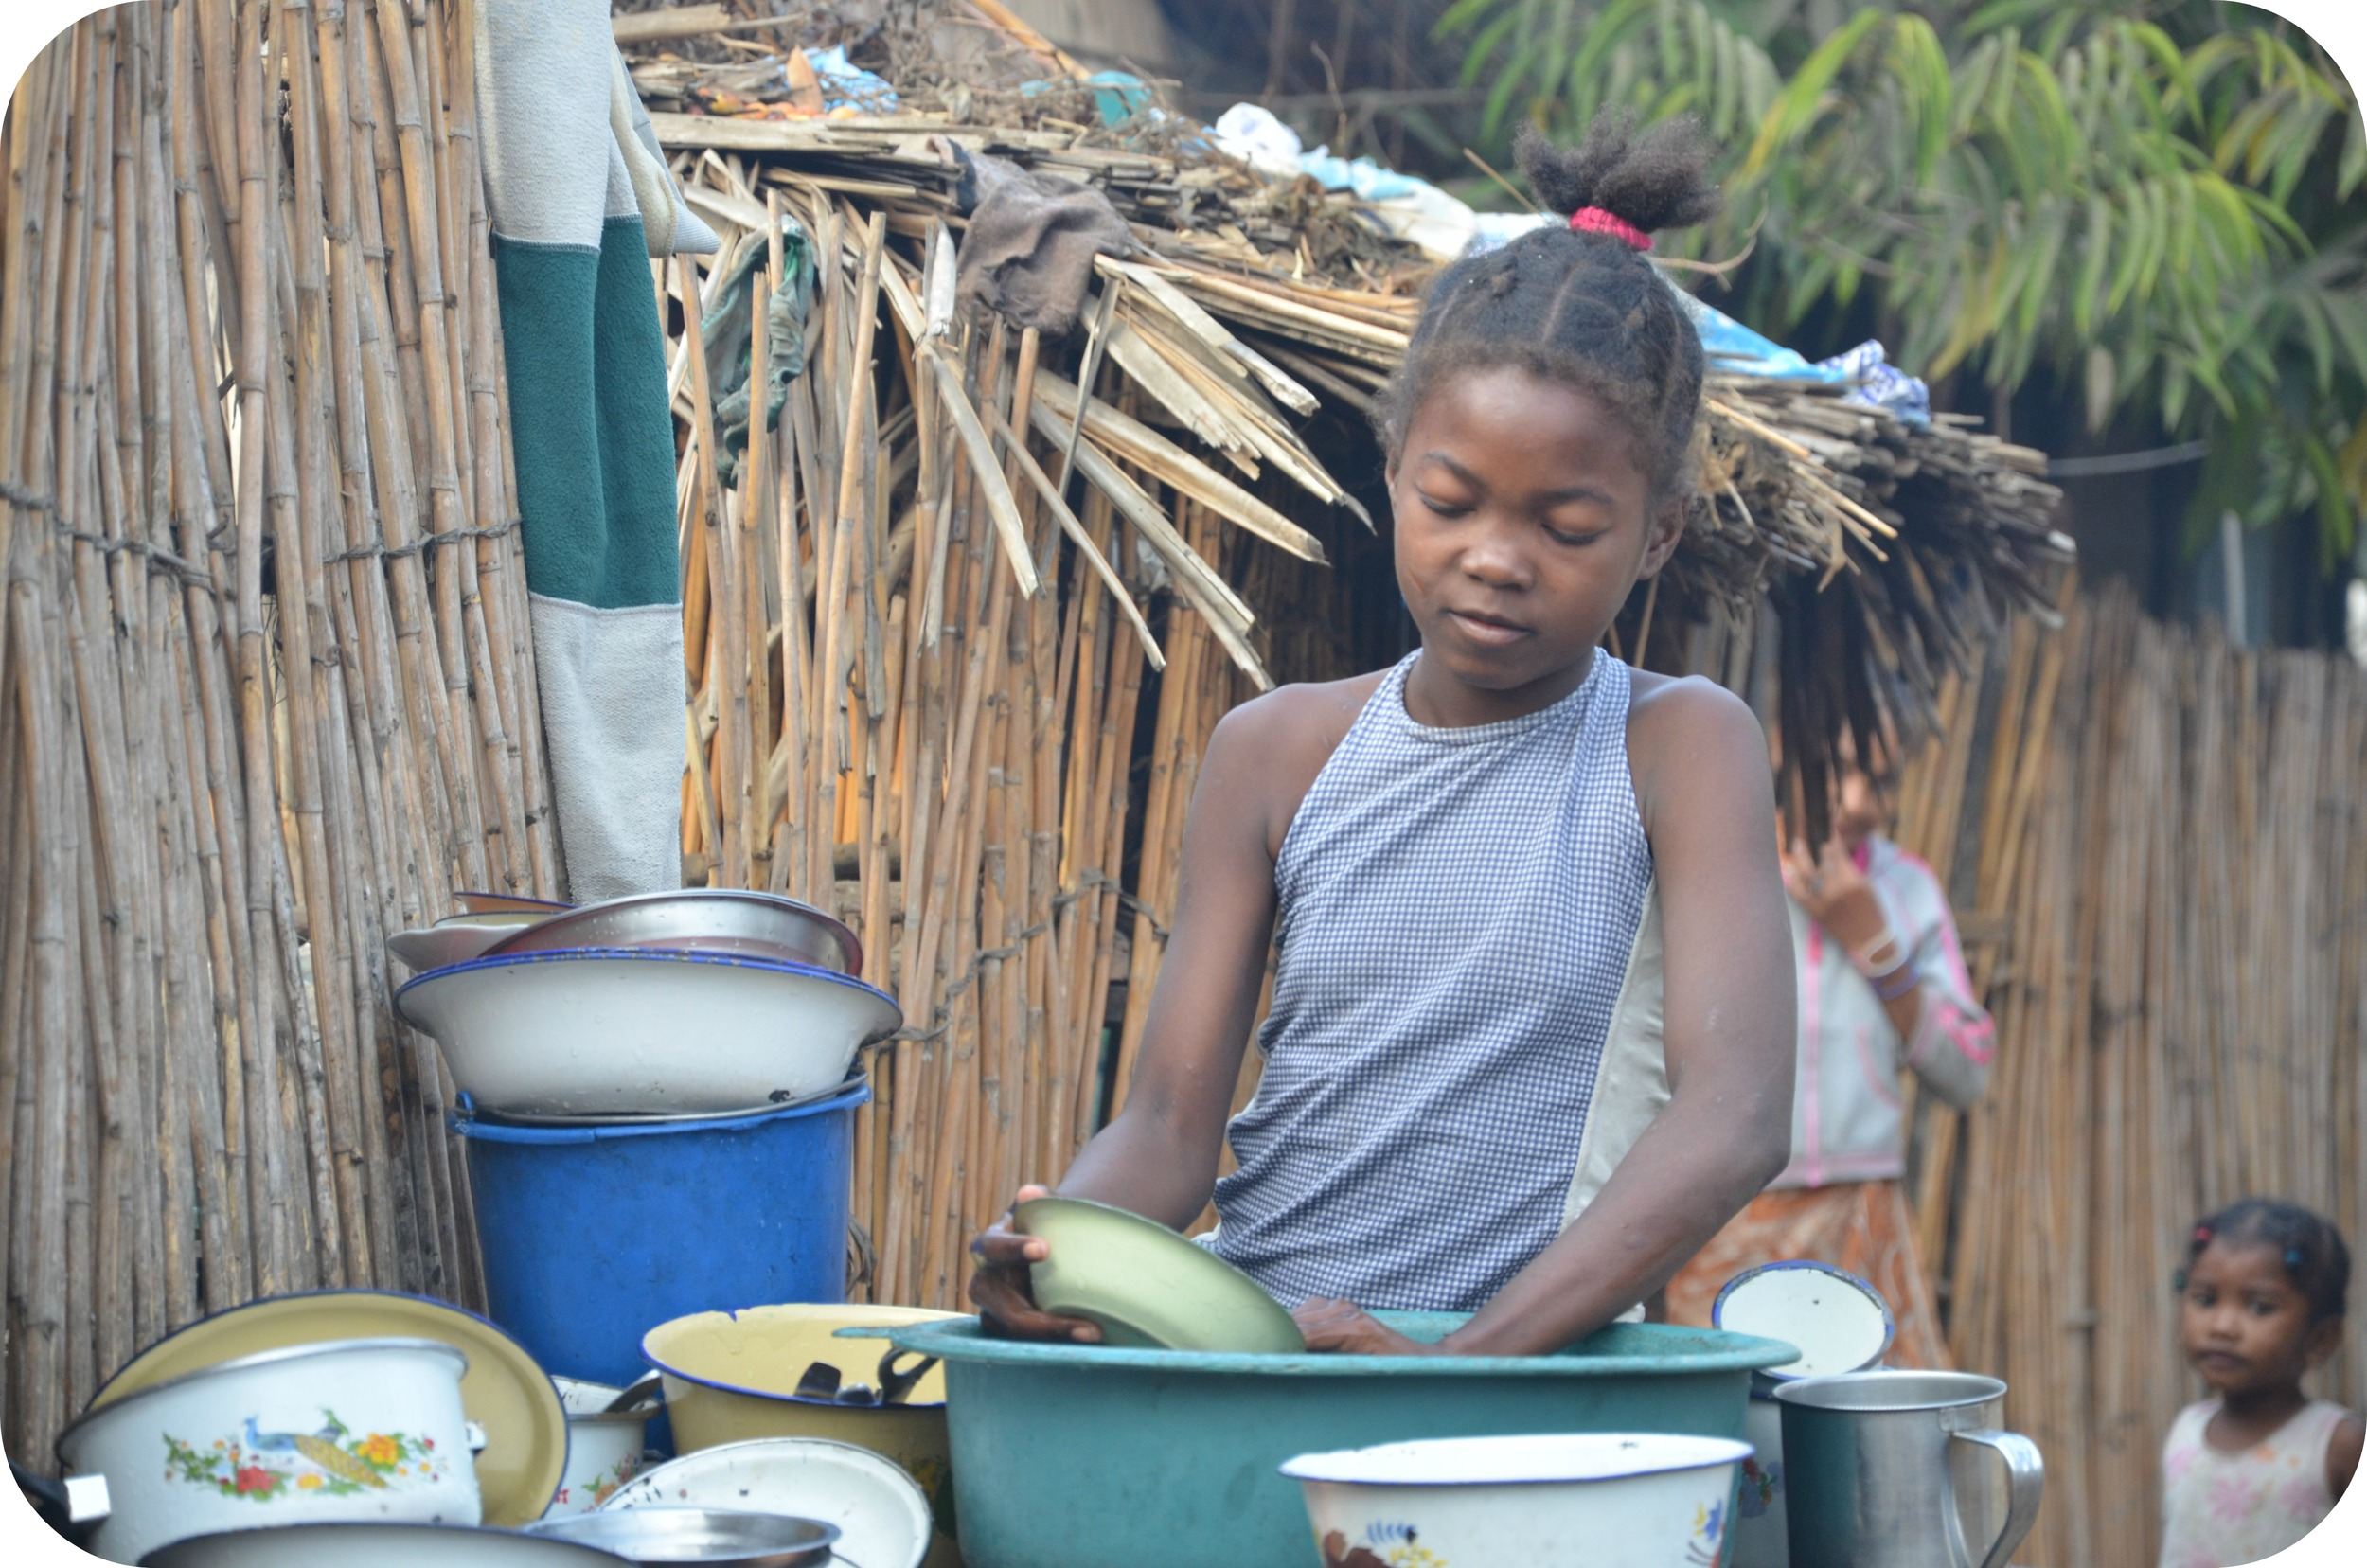 A child's right to clean water